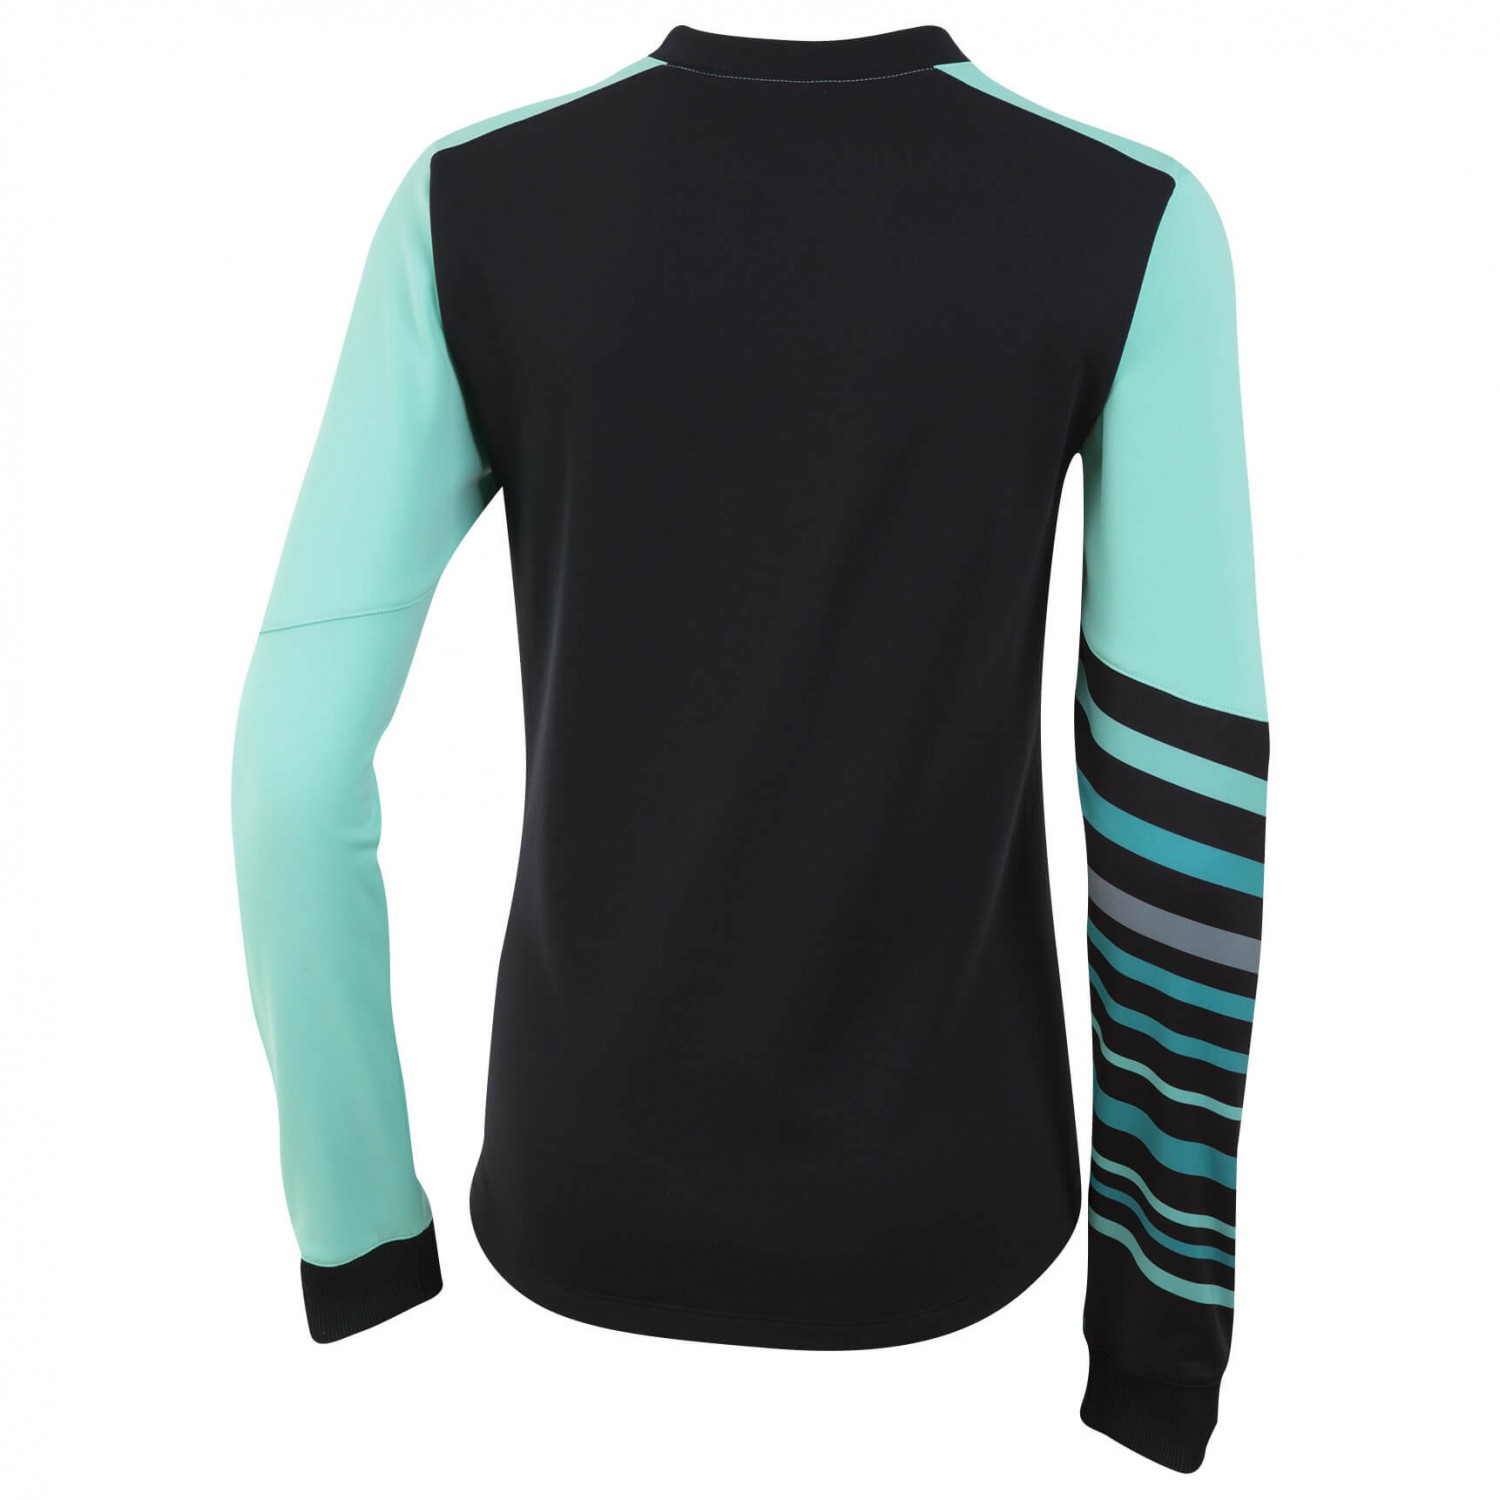 Pearl izumi launch thermal jersey cycling jersey women 39 s for Pearl izumi cycling shirt